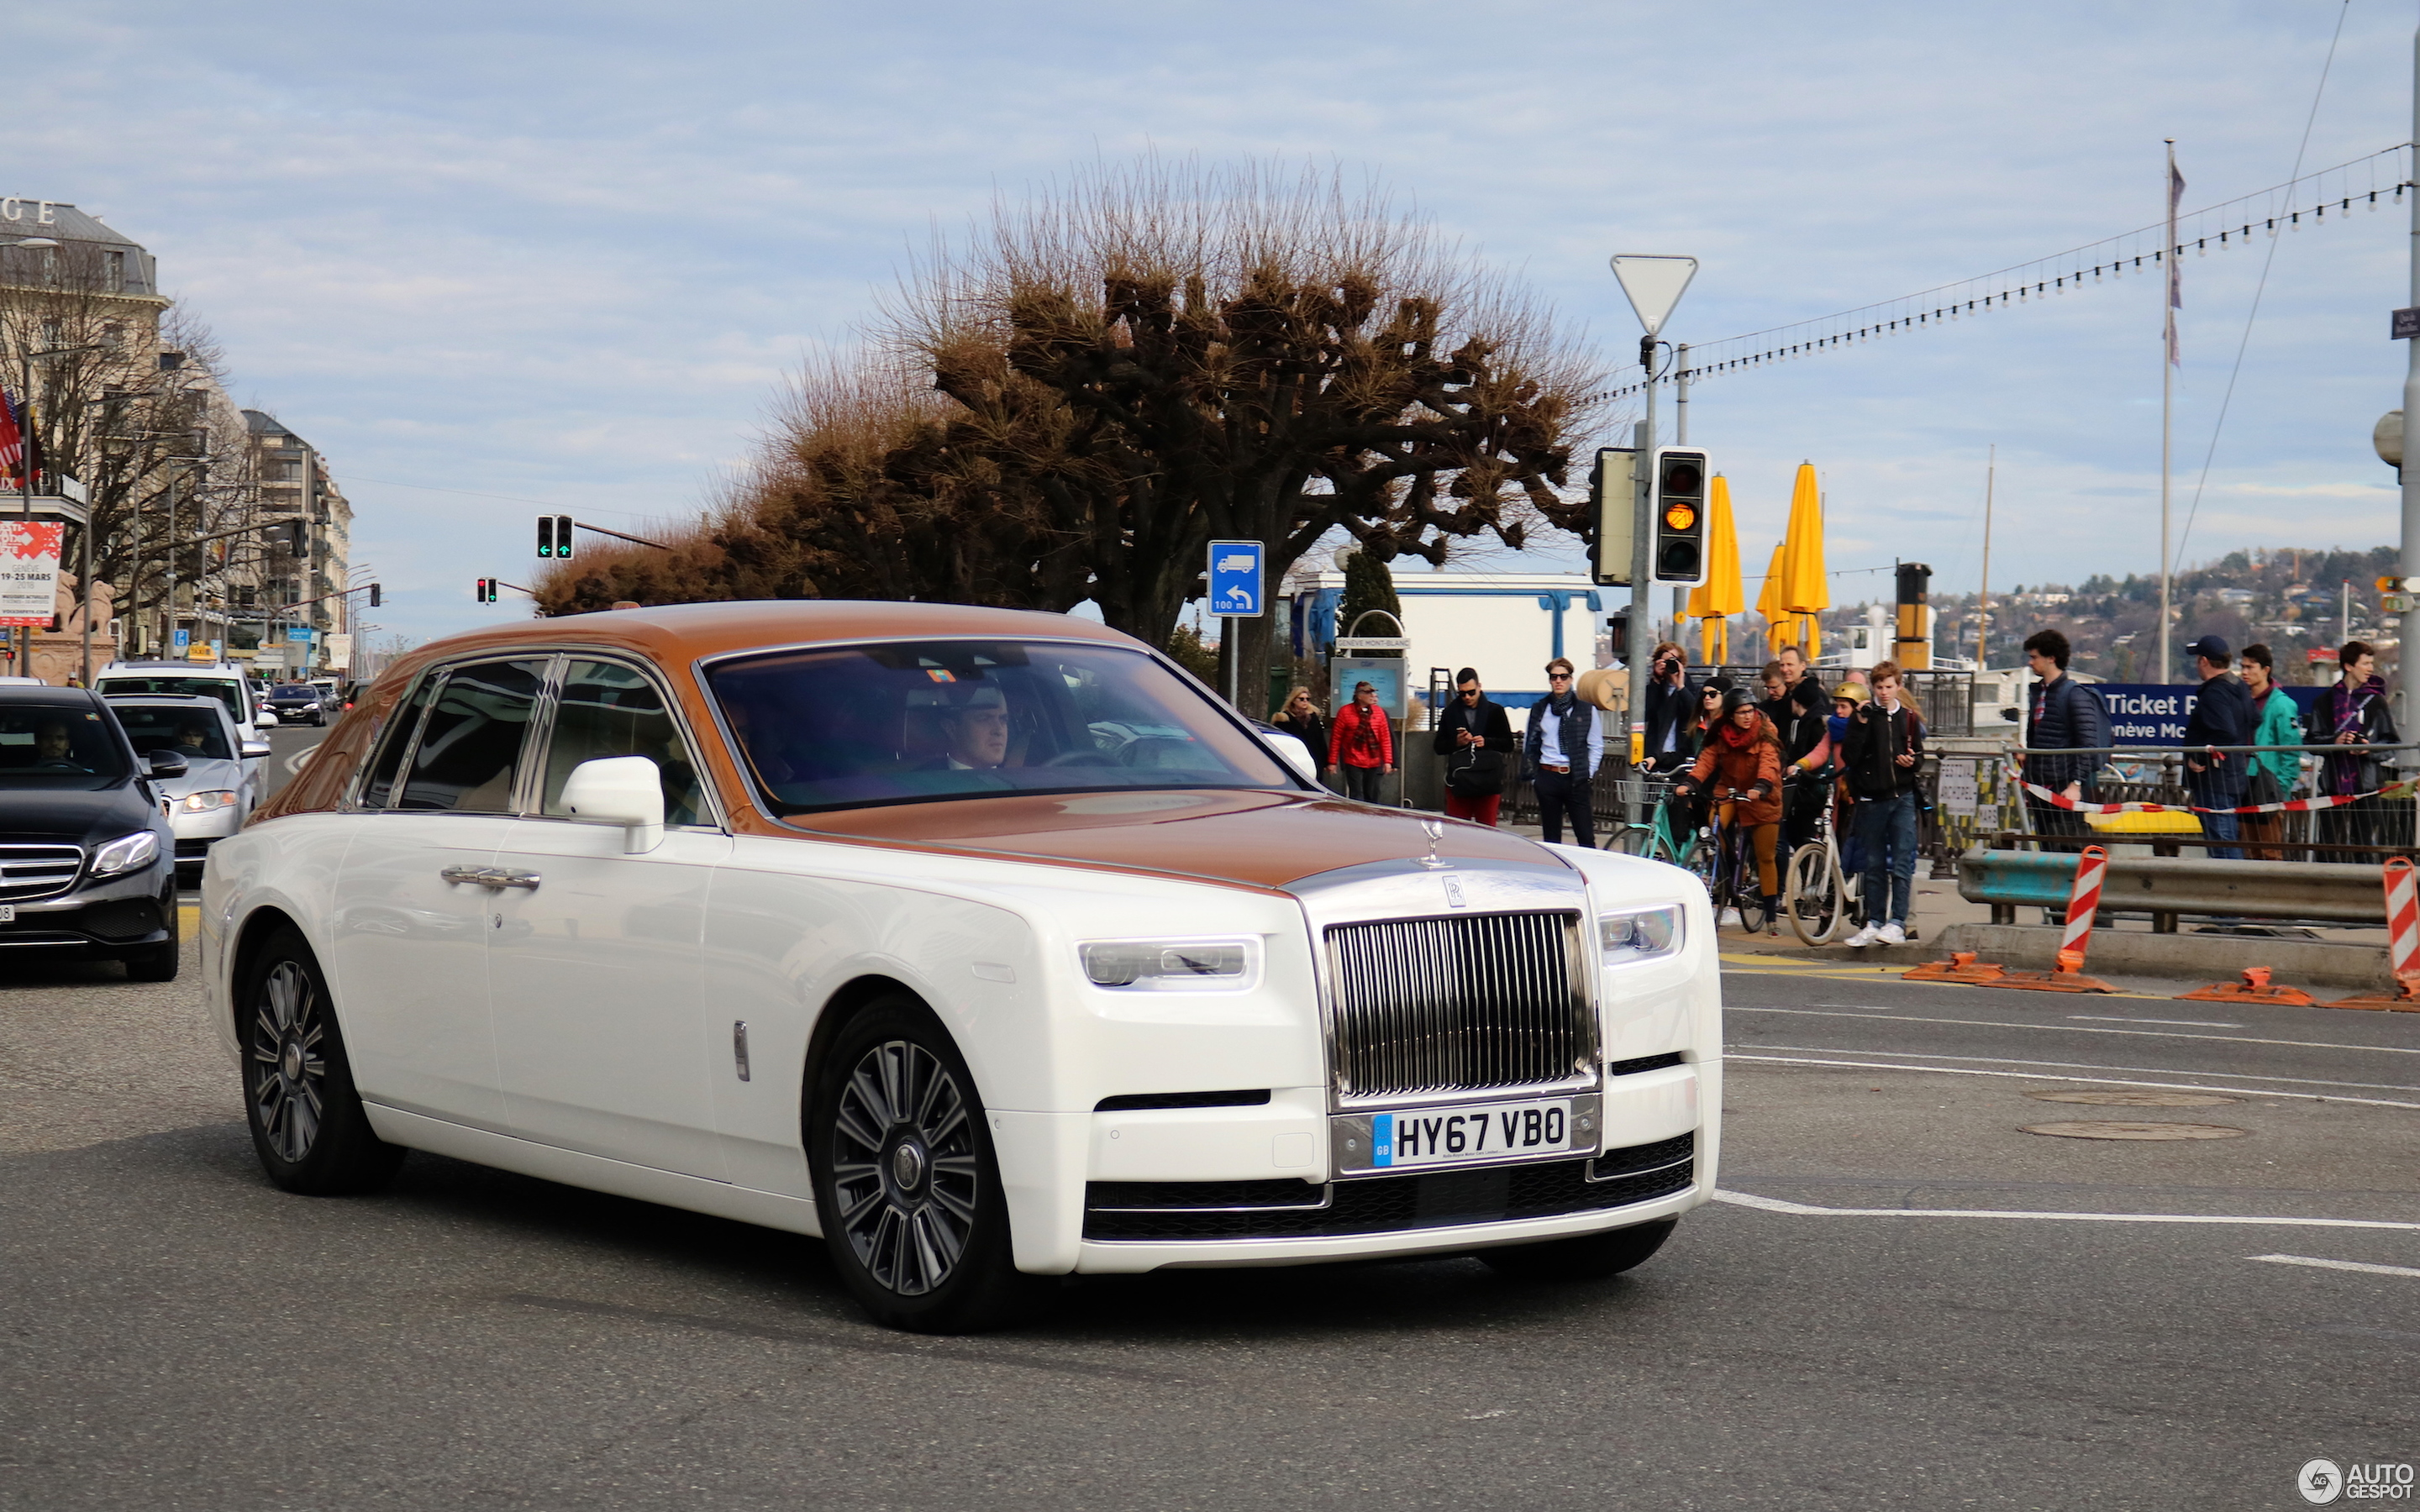 rolls royce phantom spec with 14 on Ghost besides 7 Most Expensive Luxury Cars together with Mercedes Glk 350 4 6 2014 Mercedes Glk 350 Dimensions in addition Rolls Royce Silver Wraith Hooper as well 14.